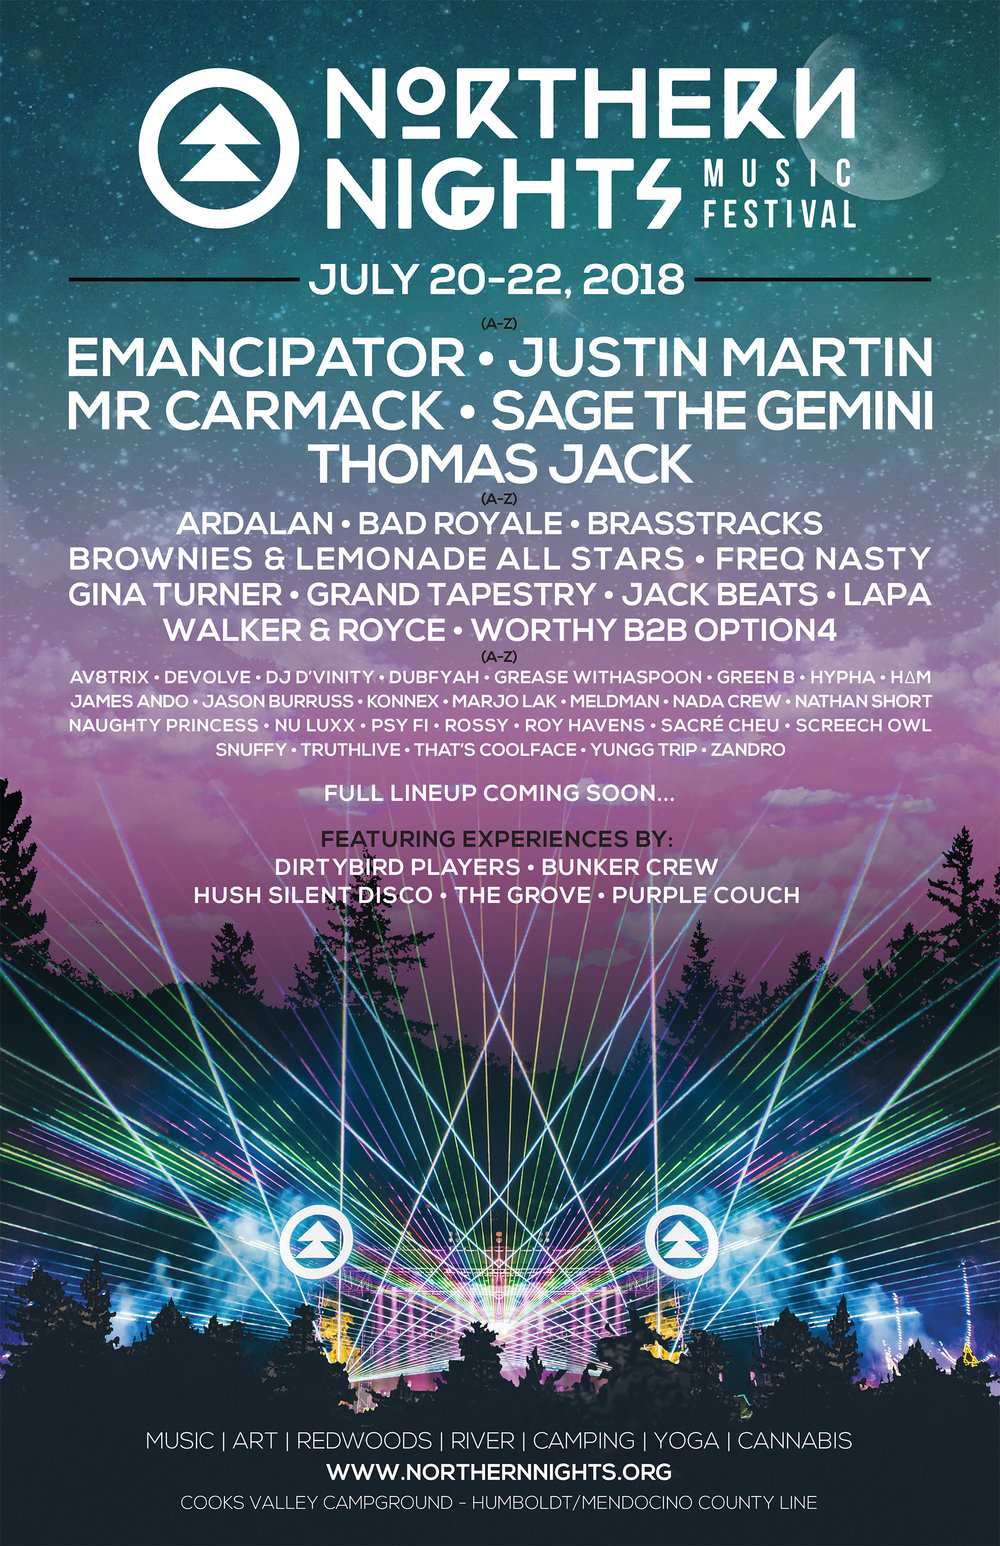 Northern Nights Music Festival 2018 Phase 1 Lineup